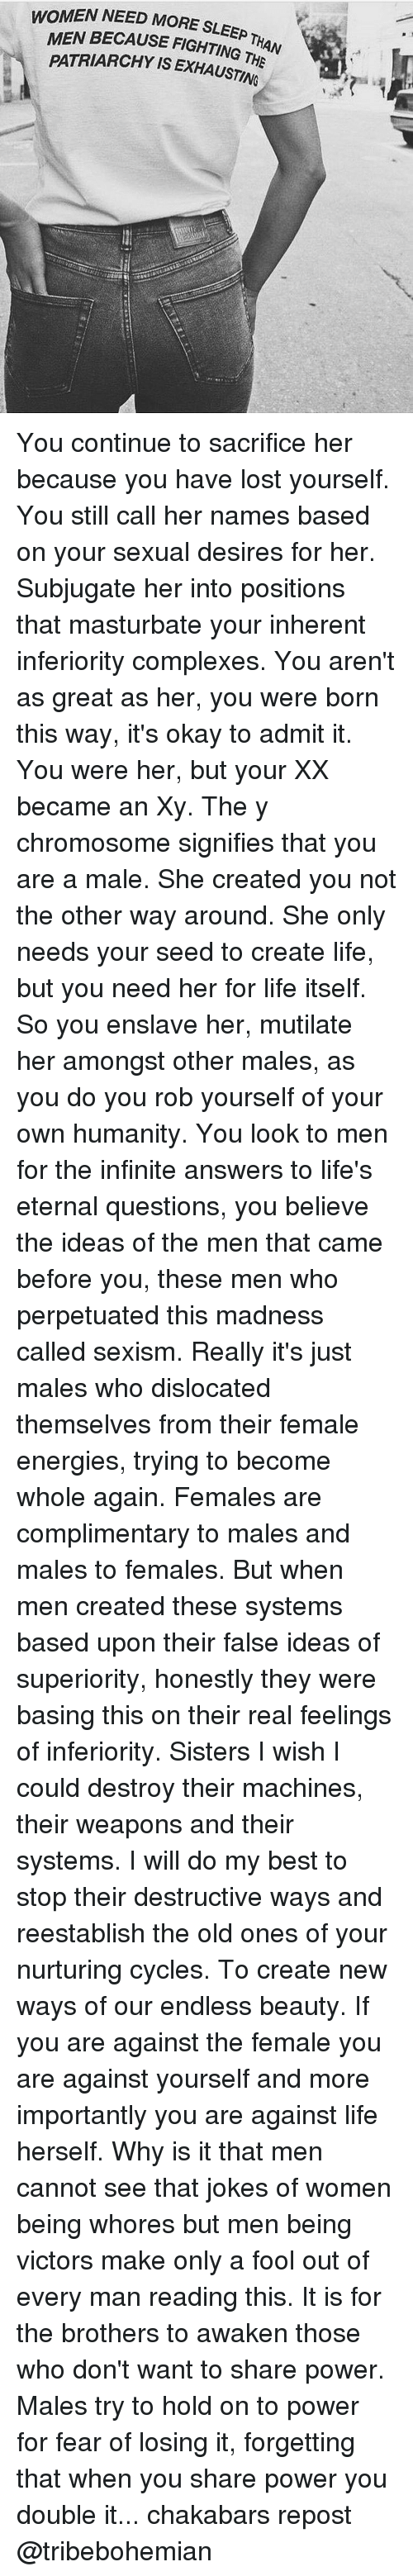 Honestity: WOMEN NEED MORE SLEEP  E SLEEP THAN  MEN BECAUSE FIGHTING T  ING THE  H  PATRIARCHY IS EXHAUSTING ari4P You continue to sacrifice her because you have lost yourself. You still call her names based on your sexual desires for her. Subjugate her into positions that masturbate your inherent inferiority complexes. You aren't as great as her, you were born this way, it's okay to admit it. You were her, but your XX became an Xy. The y chromosome signifies that you are a male. She created you not the other way around. She only needs your seed to create life, but you need her for life itself. So you enslave her, mutilate her amongst other males, as you do you rob yourself of your own humanity. You look to men for the infinite answers to life's eternal questions, you believe the ideas of the men that came before you, these men who perpetuated this madness called sexism. Really it's just males who dislocated themselves from their female energies, trying to become whole again. Females are complimentary to males and males to females. But when men created these systems based upon their false ideas of superiority, honestly they were basing this on their real feelings of inferiority. Sisters I wish I could destroy their machines, their weapons and their systems. I will do my best to stop their destructive ways and reestablish the old ones of your nurturing cycles. To create new ways of our endless beauty. If you are against the female you are against yourself and more importantly you are against life herself. Why is it that men cannot see that jokes of women being whores but men being victors make only a fool out of every man reading this. It is for the brothers to awaken those who don't want to share power. Males try to hold on to power for fear of losing it, forgetting that when you share power you double it... chakabars repost @tribebohemian